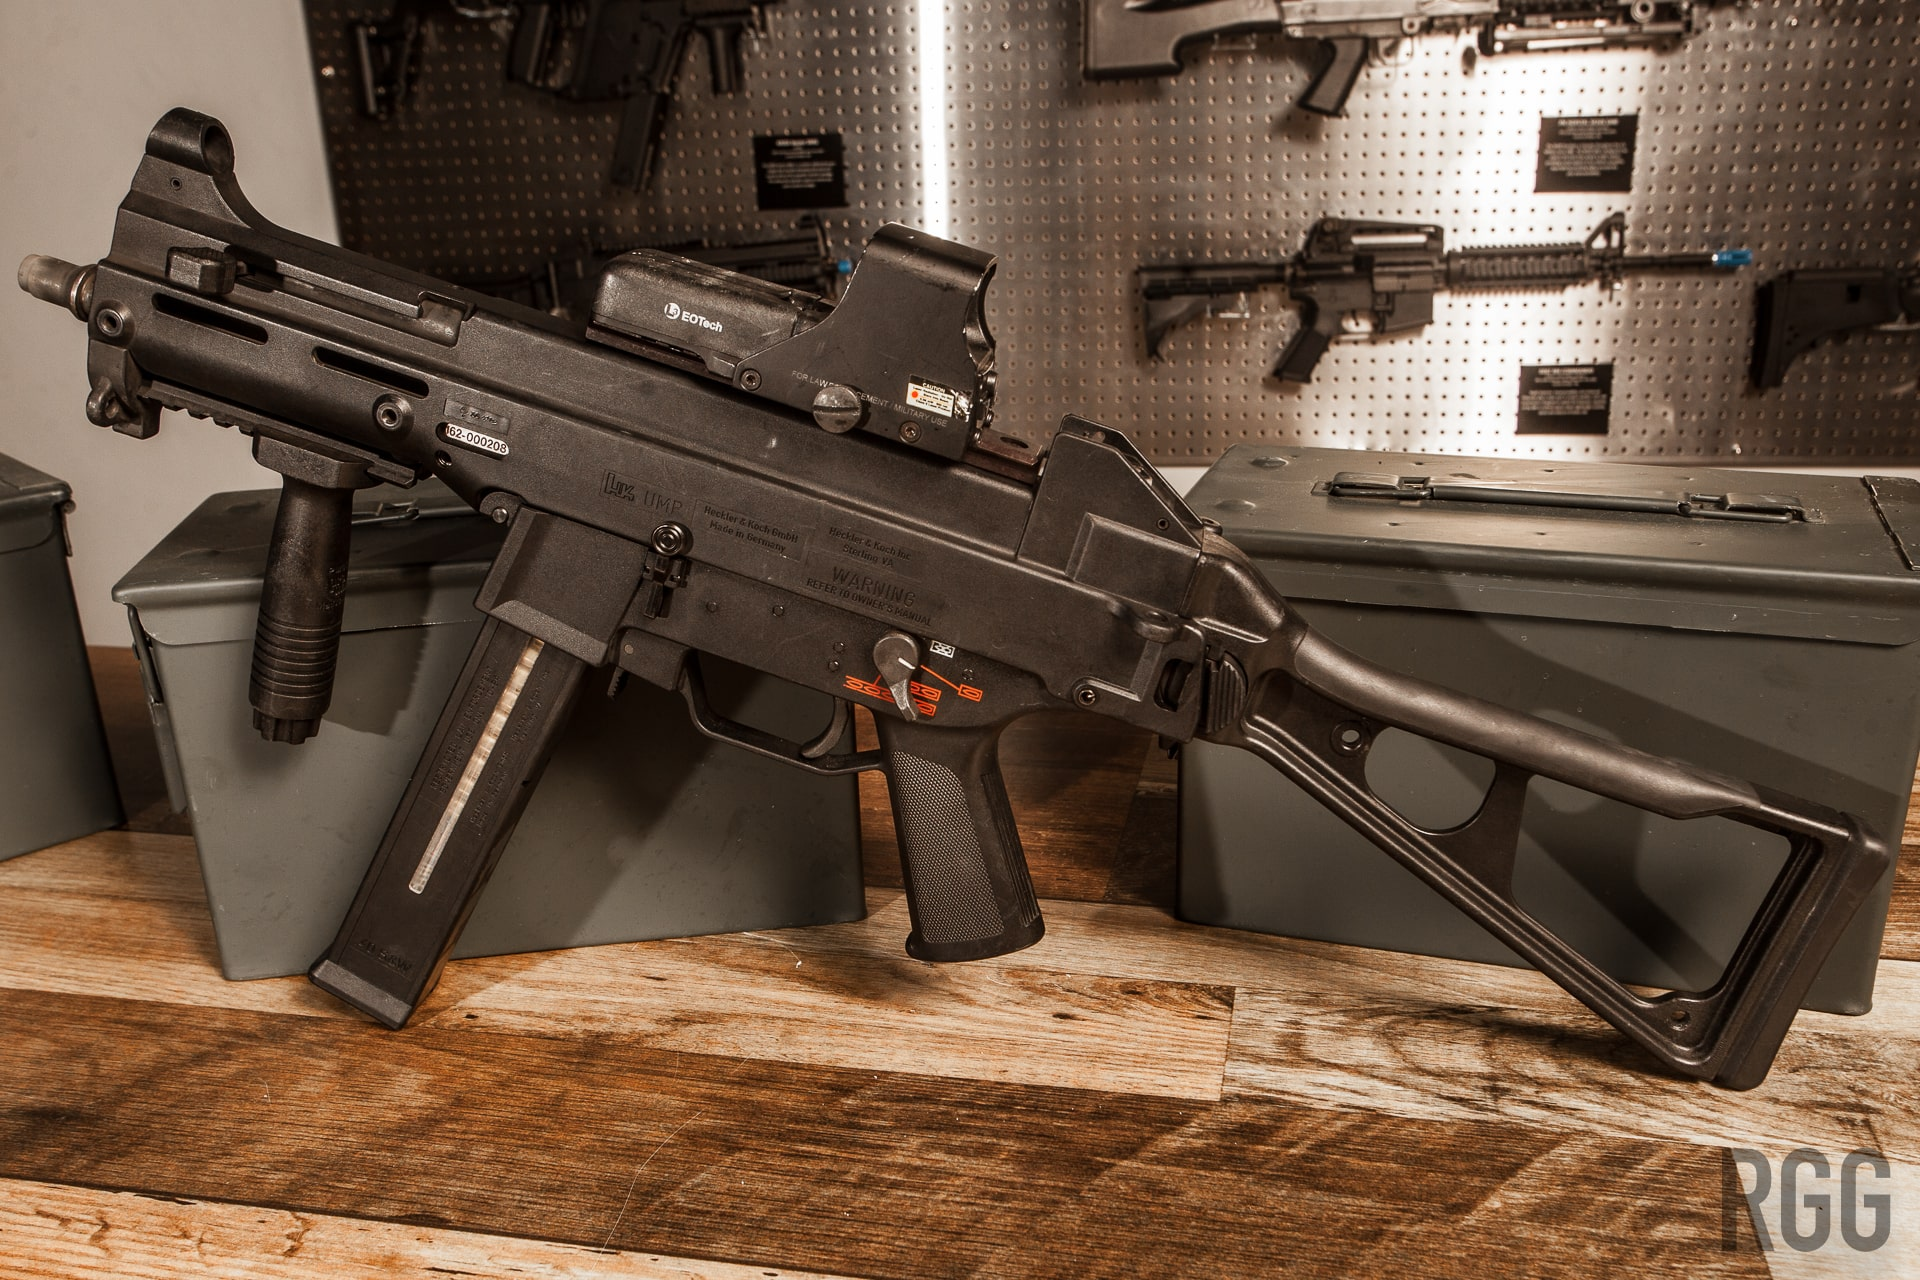 Depicted here is a Heckler & Koch UMP 45, a real submachine gun.